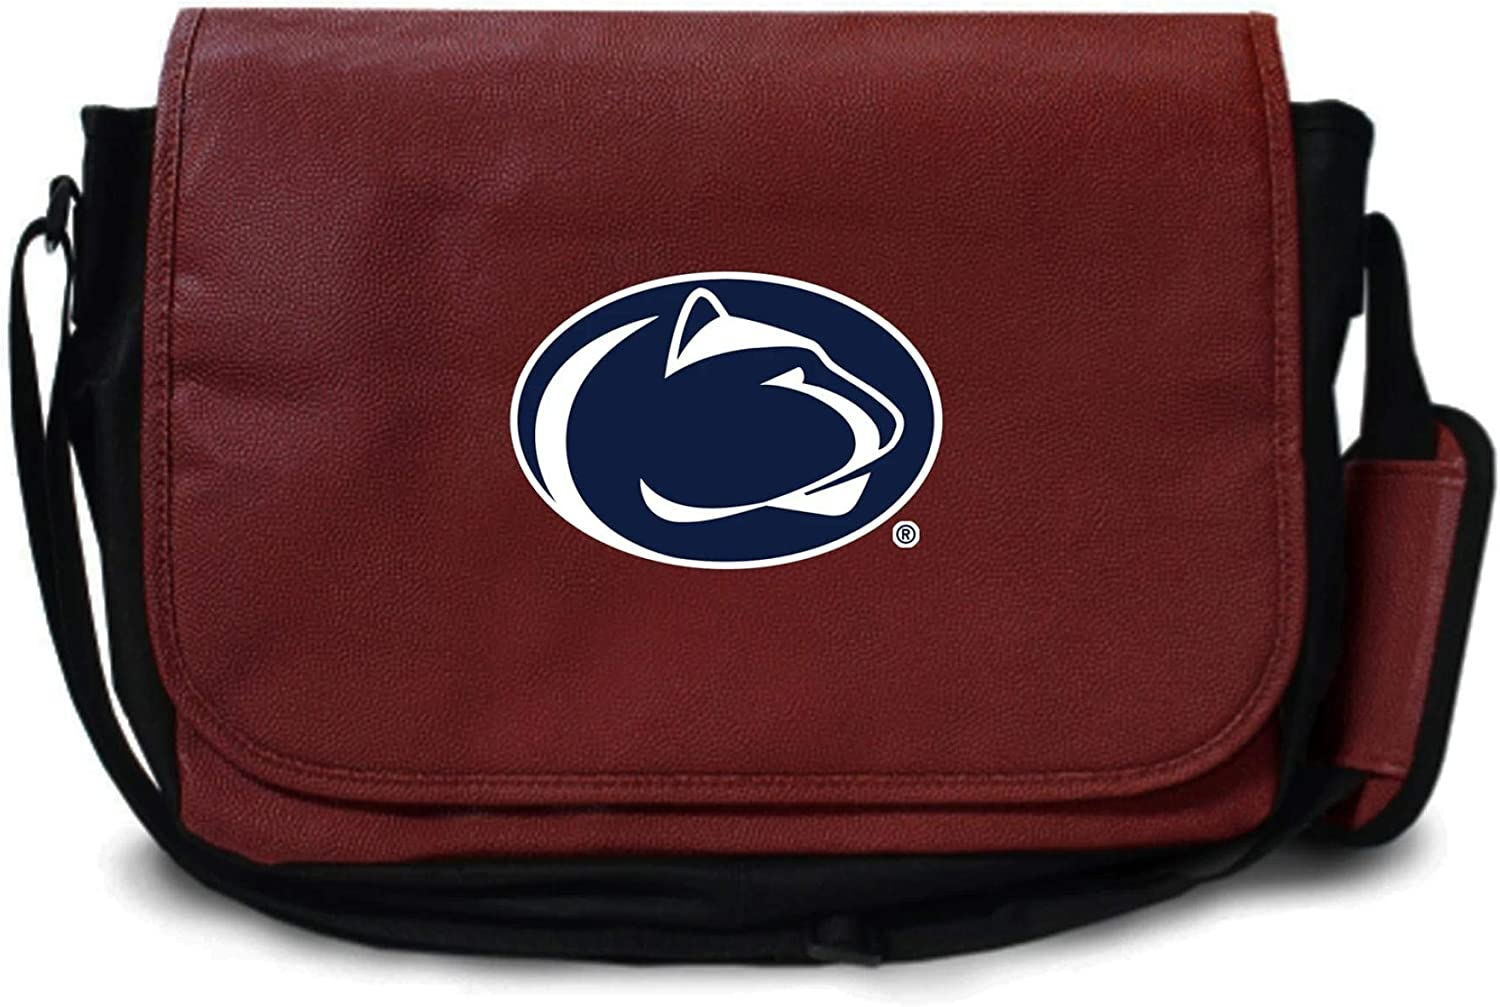 Penn State Nittany Lions Football Leather Laptop Computer Case Messenger Shoulder Bag - made from the same materials as a football - Brown